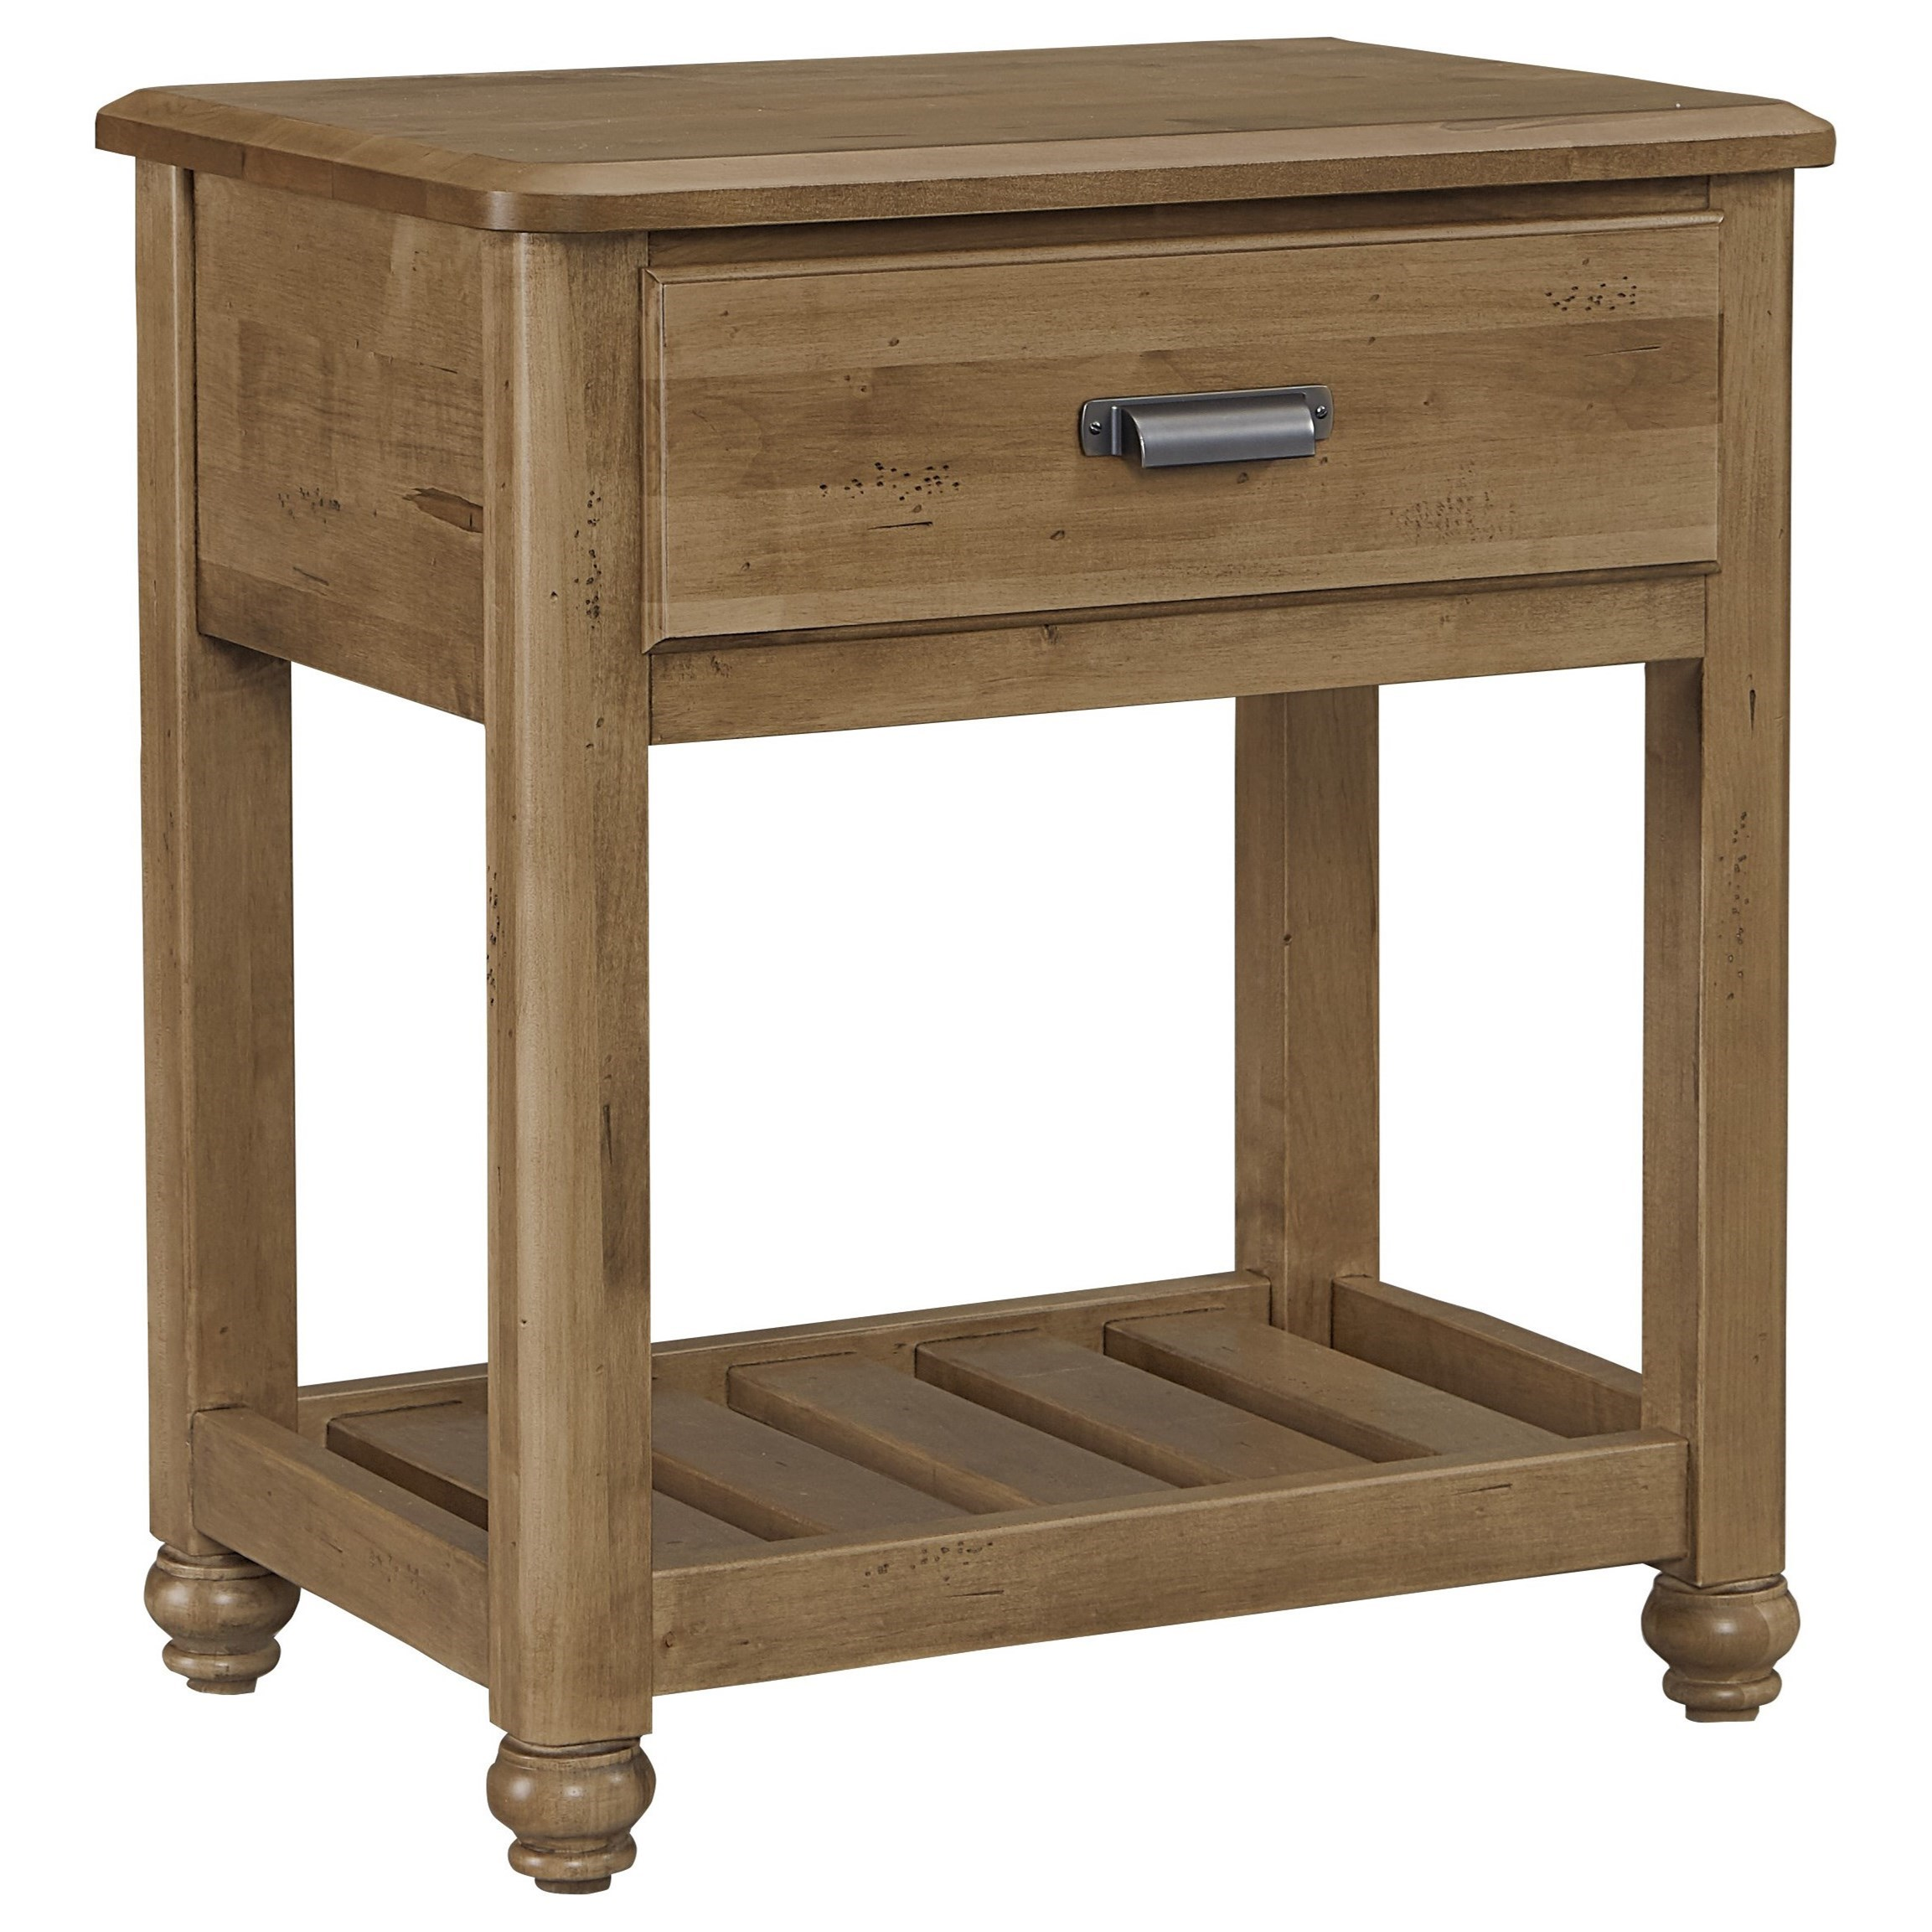 Vaughan Bassett Maple Escape Night Table - 1 Drawer - Item Number: 402-226